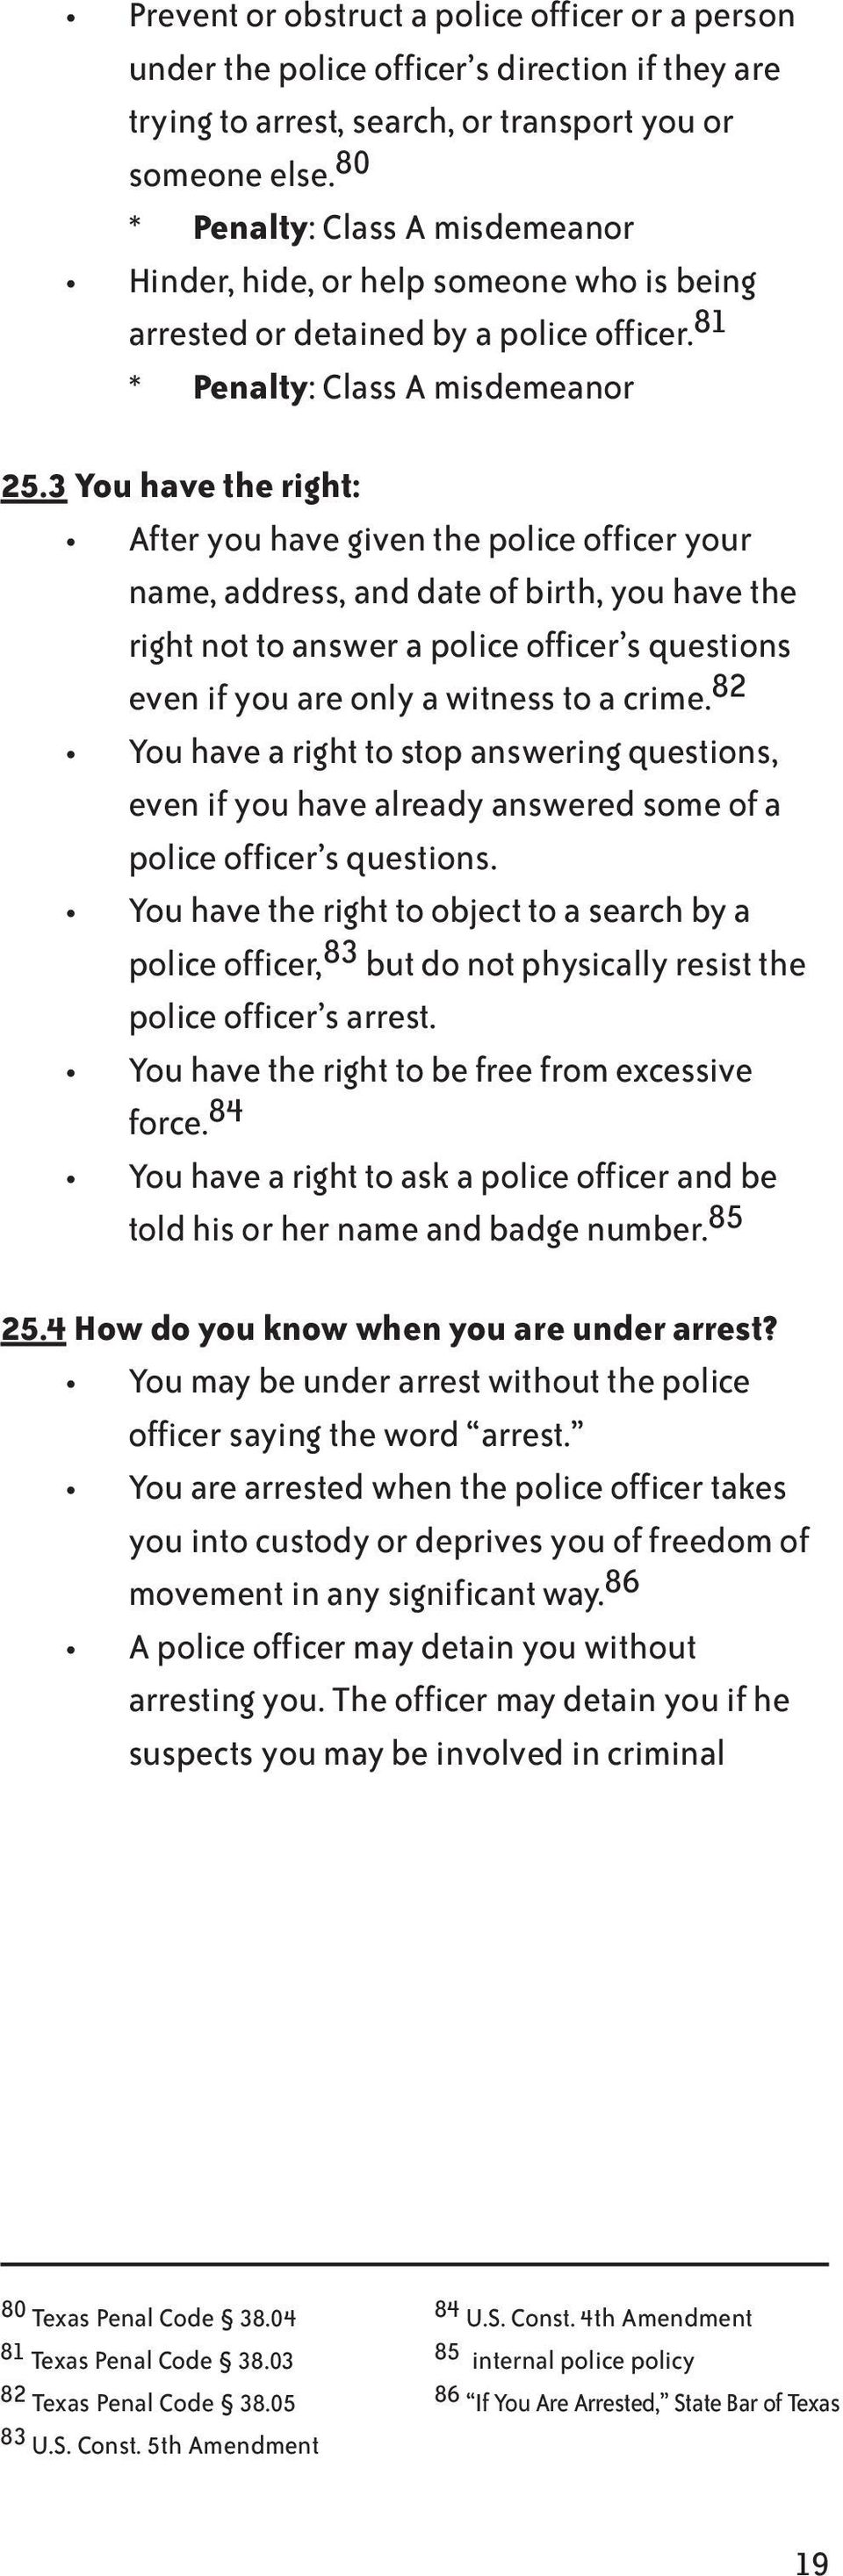 3 You have the right: After you have given the police officer your name, address, and date of birth, you have the right not to answer a police officer s questions even if you are only a witness to a